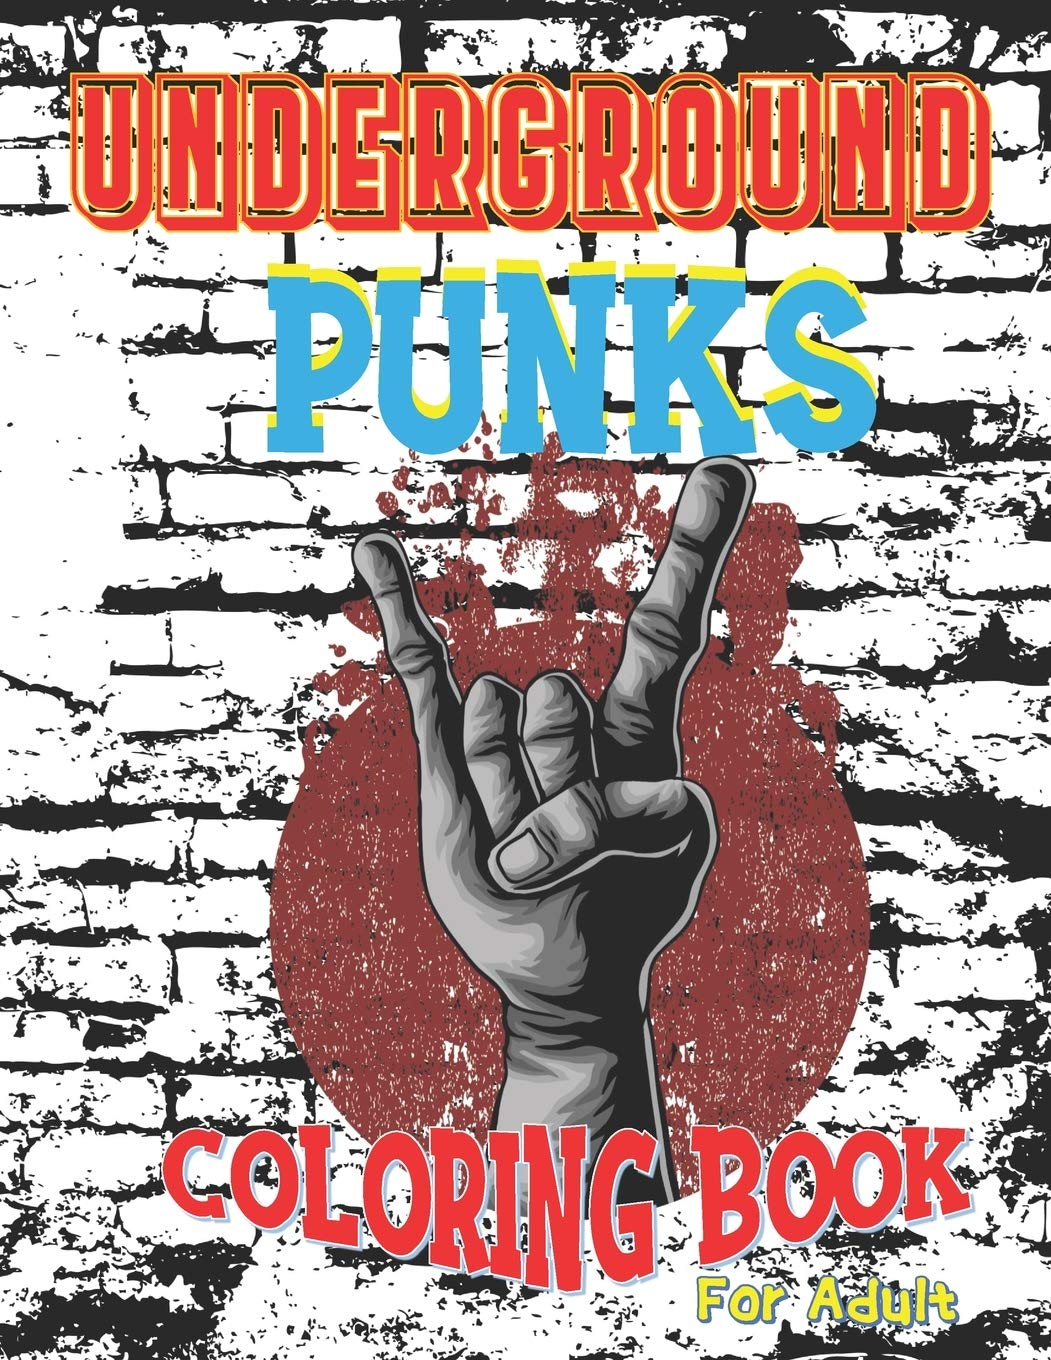 Underground Punks coloring book for adult: UNITY AS ONE STAND TOGETHER,UNITY EVOLUTION'S GOTTA COME